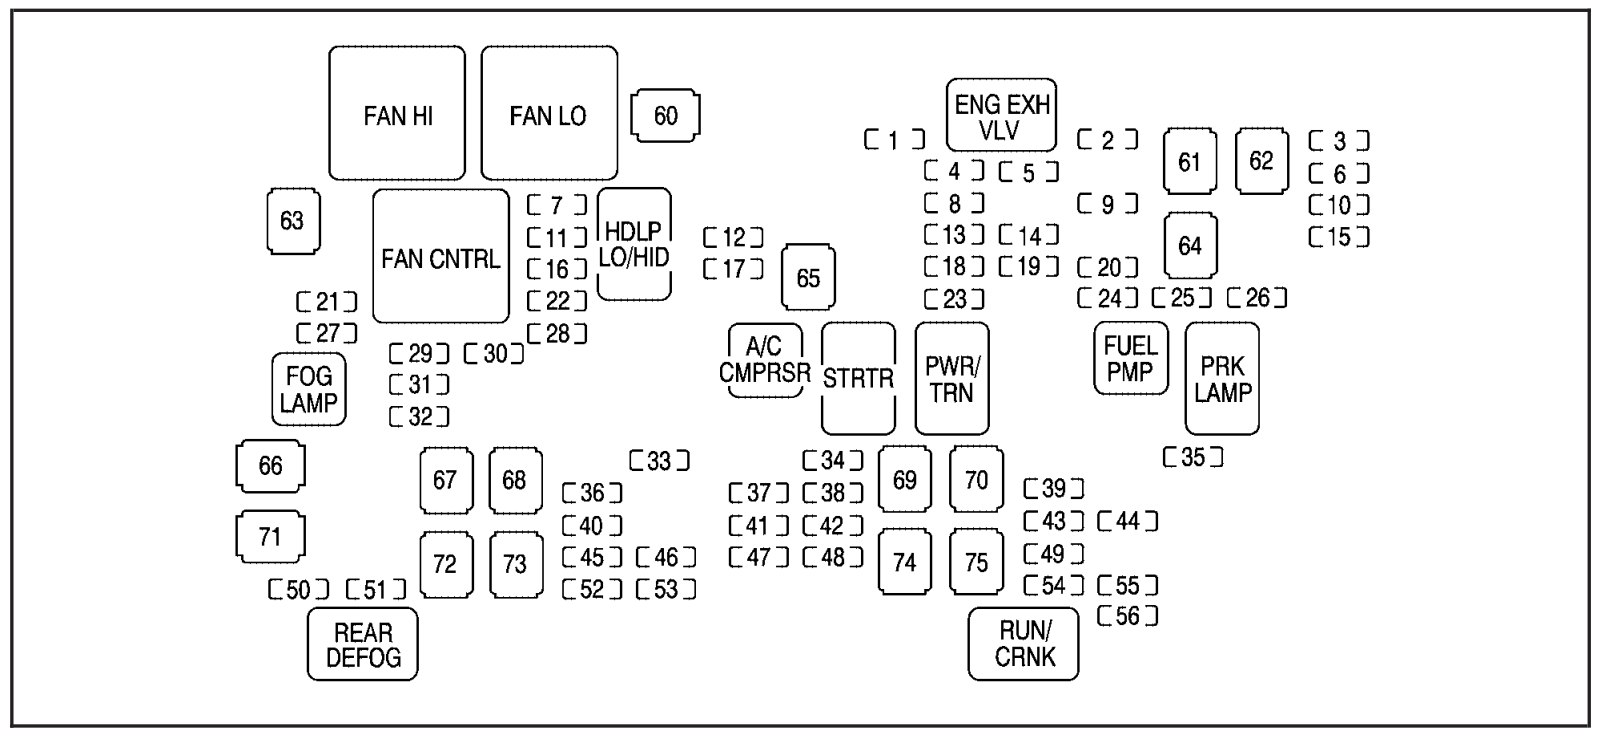 2007 tahoe fuse box diagram - wiring diagram system slim-locate -  slim-locate.ediliadesign.it  ediliadesign.it